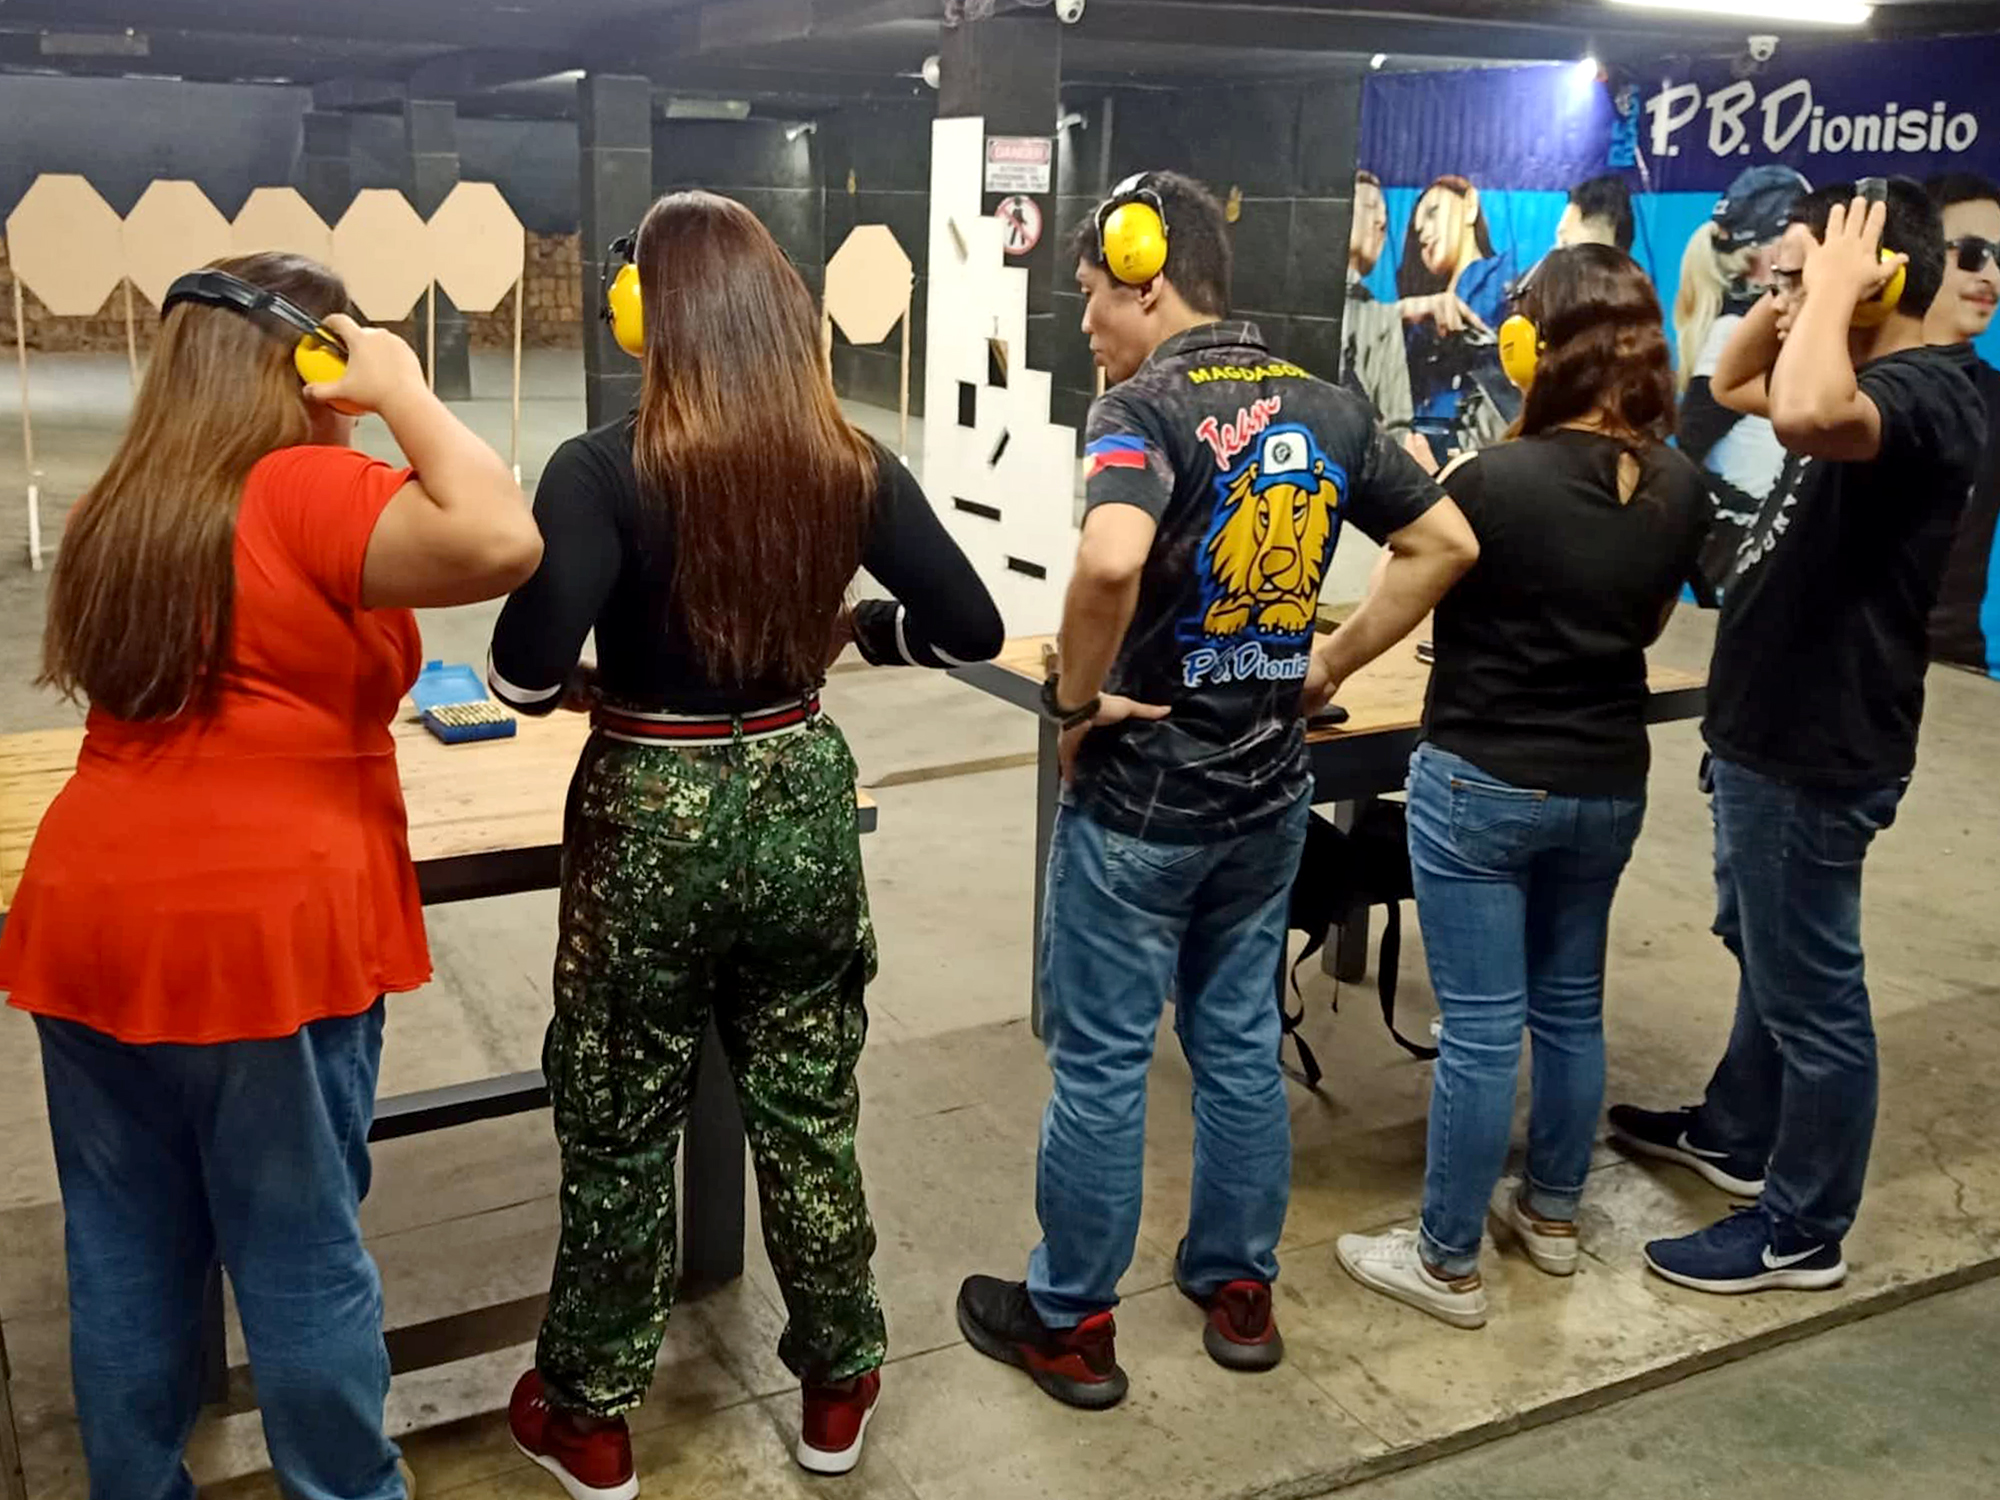 Be ready for some serious fun at our Indoor Shooting Range in Quezon City.